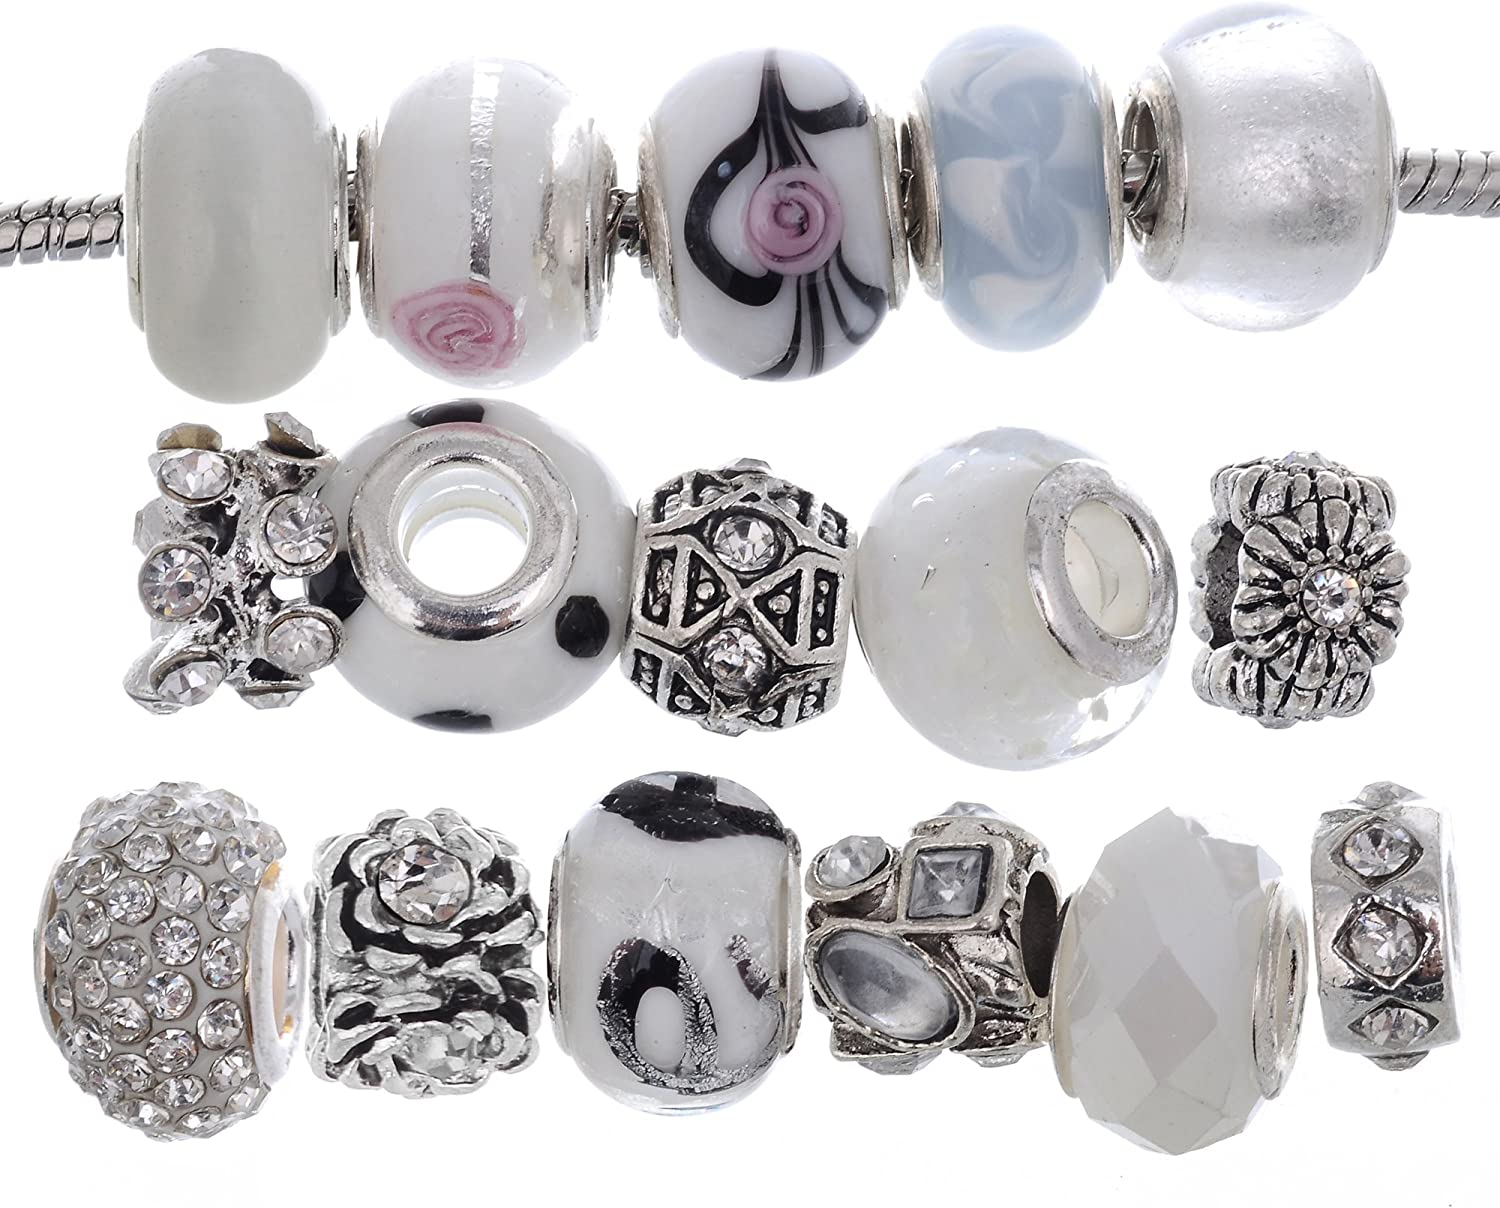 only New 9pc PINKWHITE Glass European charm beads Lampwork Murano /& Crystal Paved Beads Large 5mm hole European spacer lot MA12